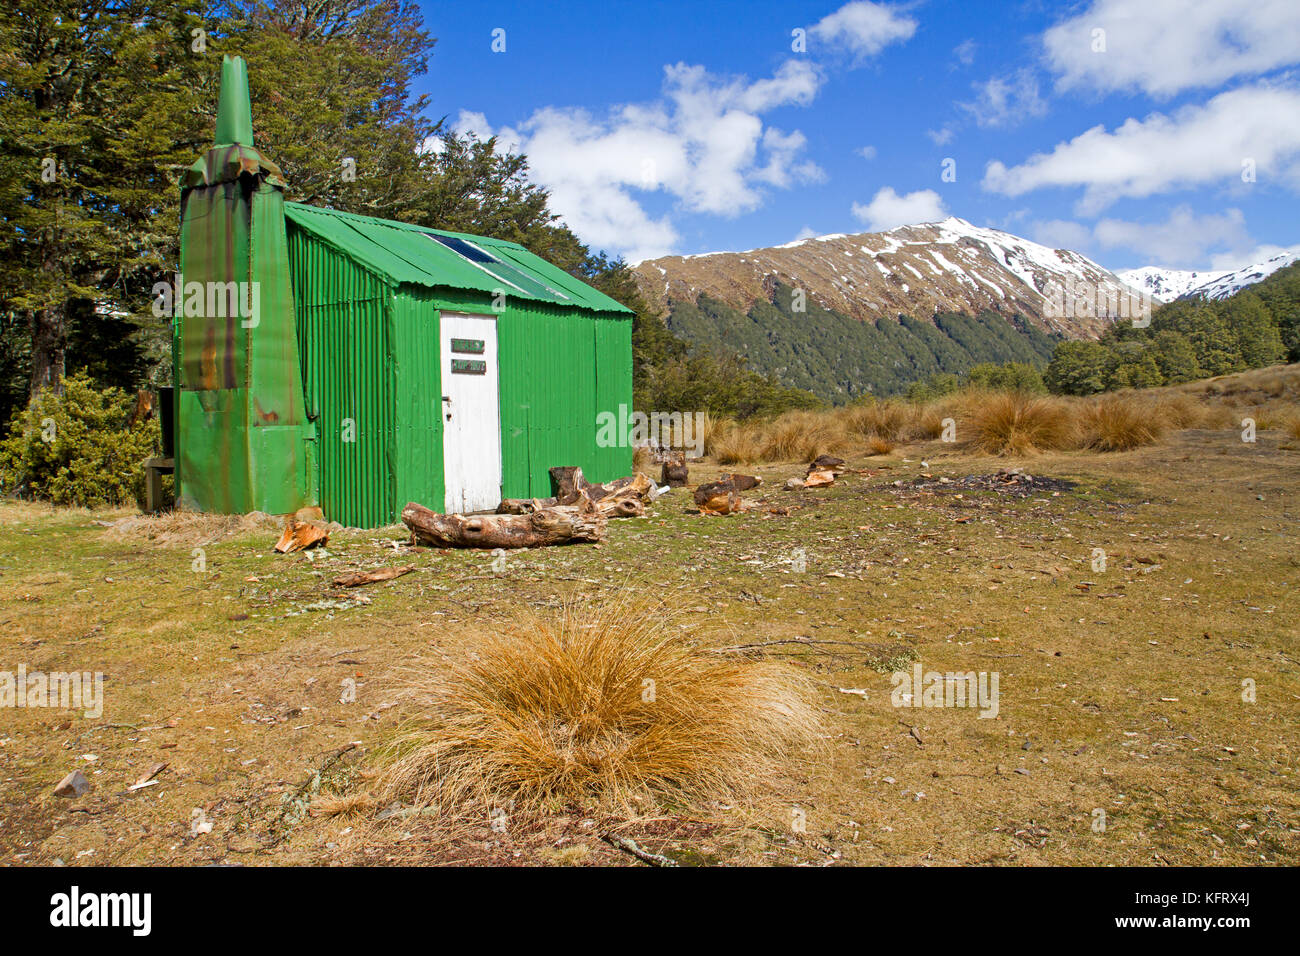 Bealey Spur Hut in Arthur's Pass National Park - Stock Image